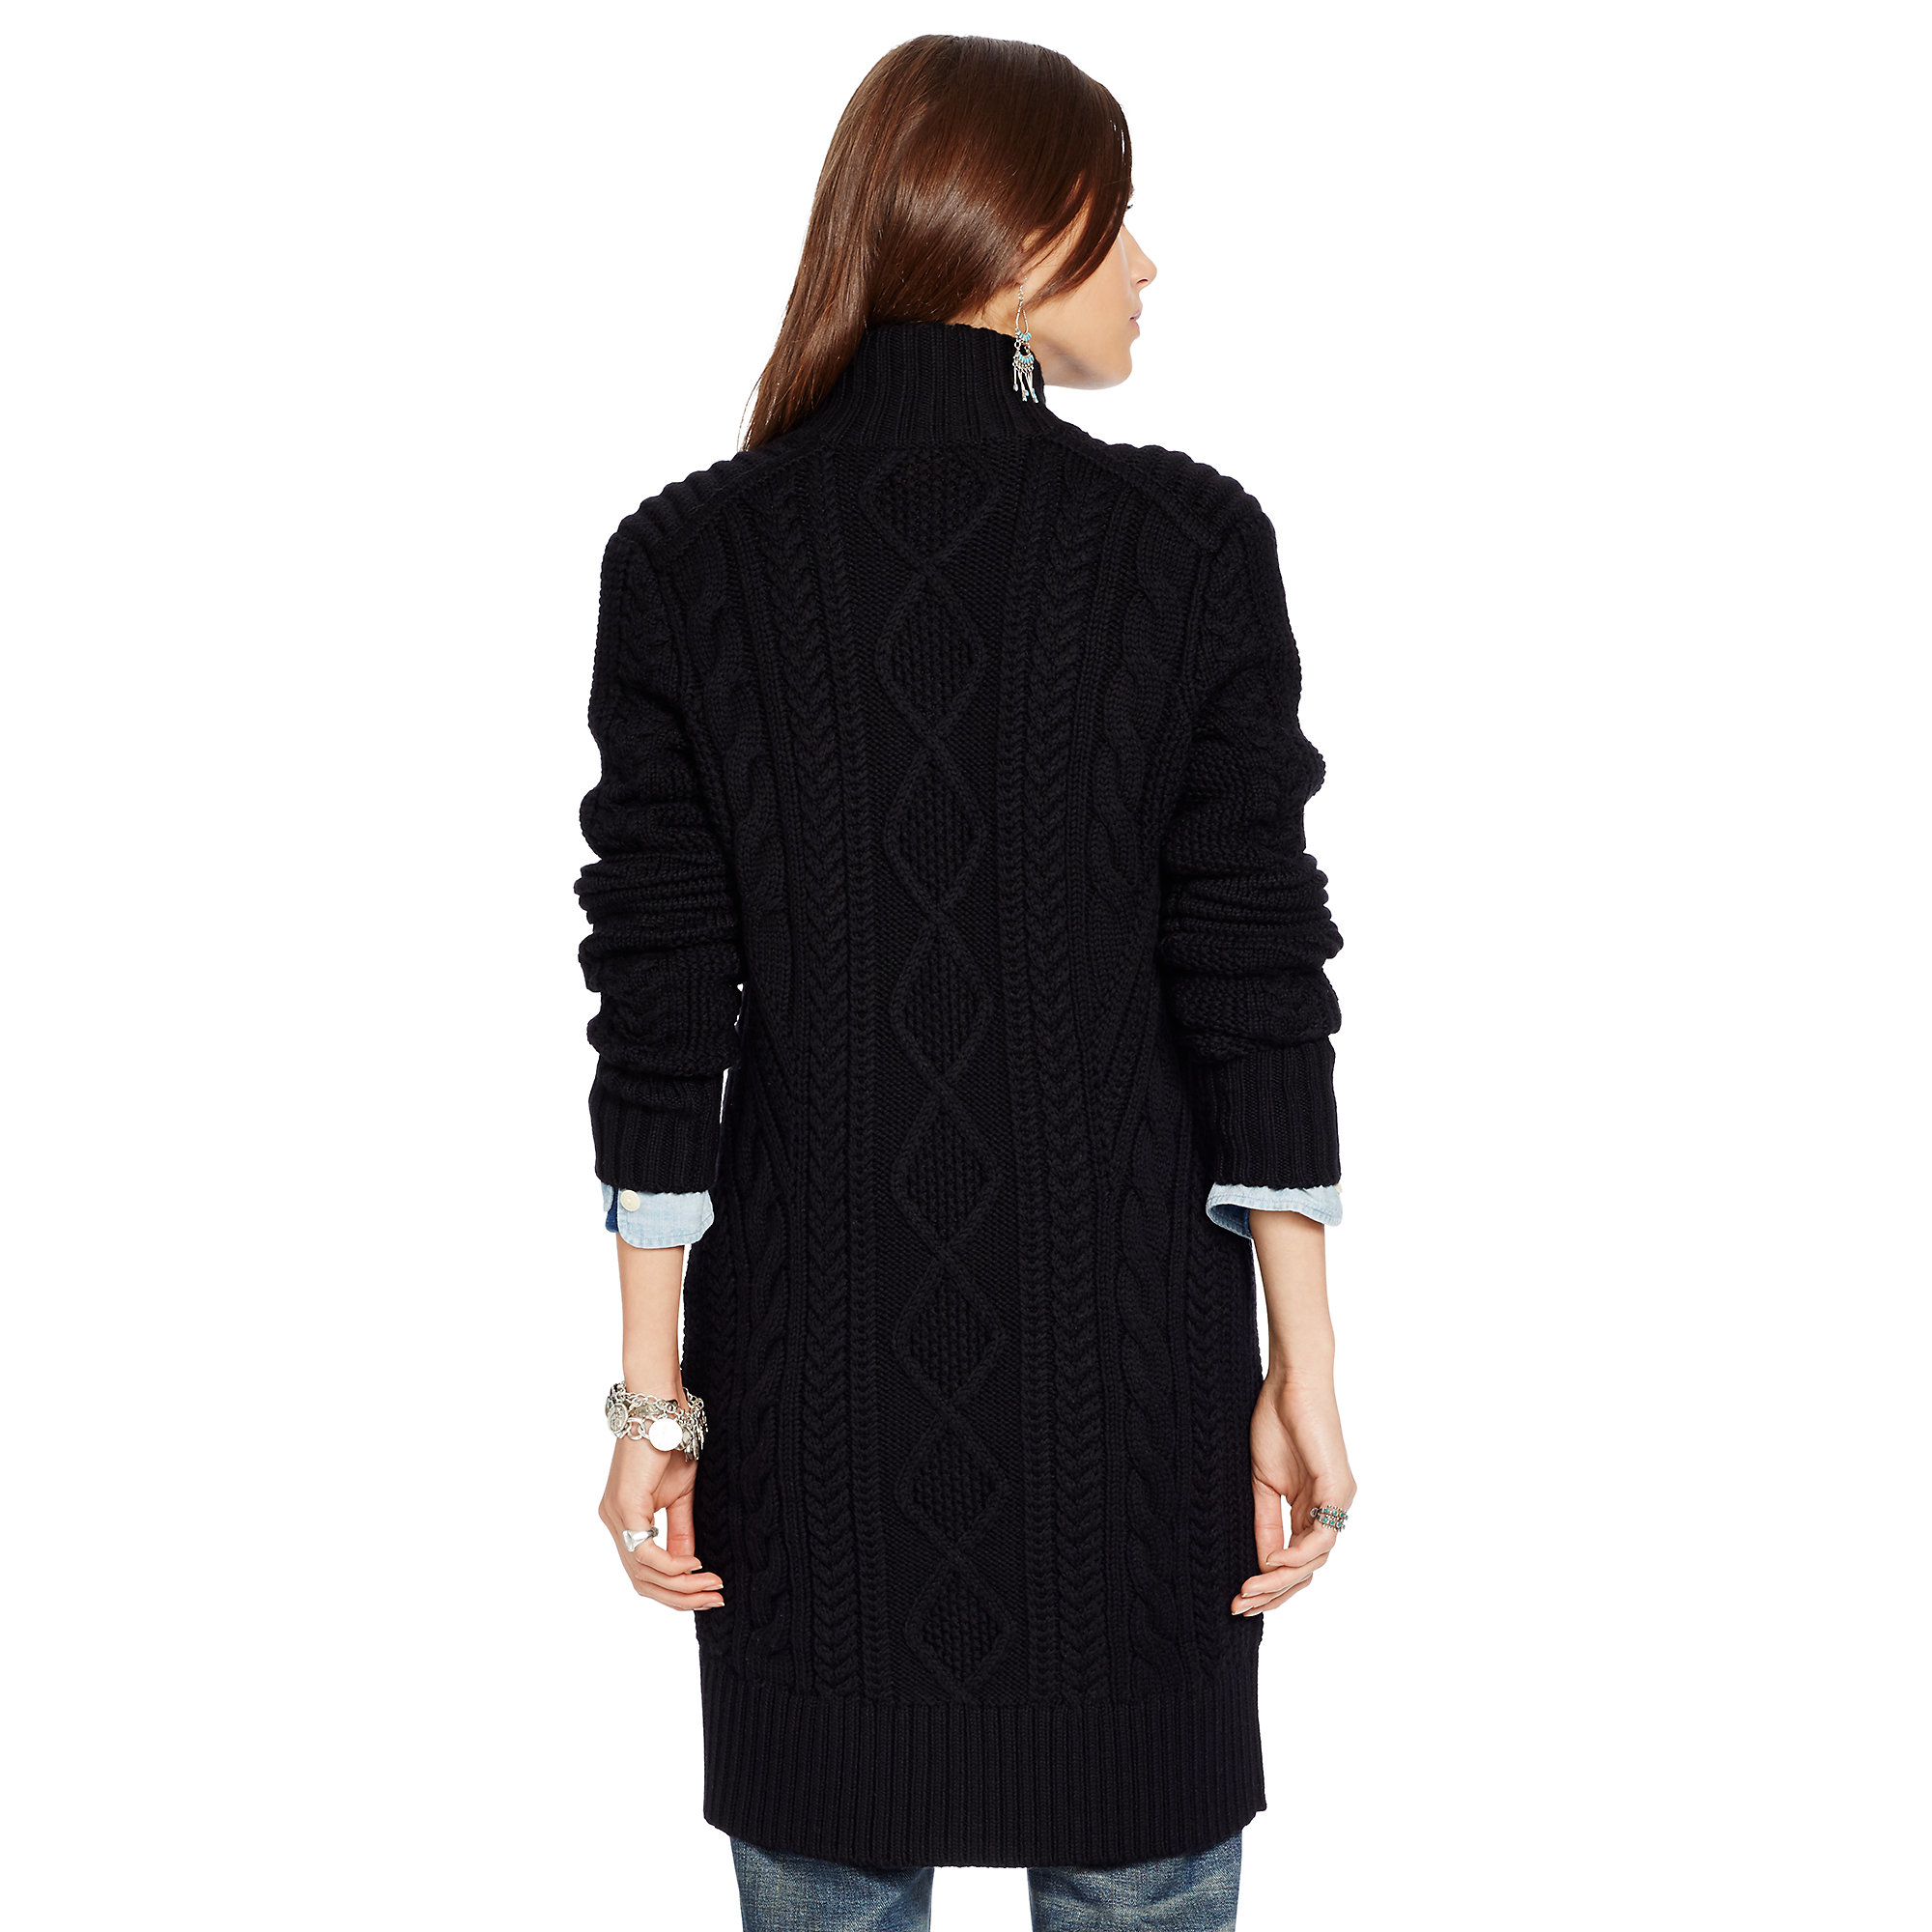 Polo ralph lauren Cabled Merino Wool Cardigan in Black | Lyst